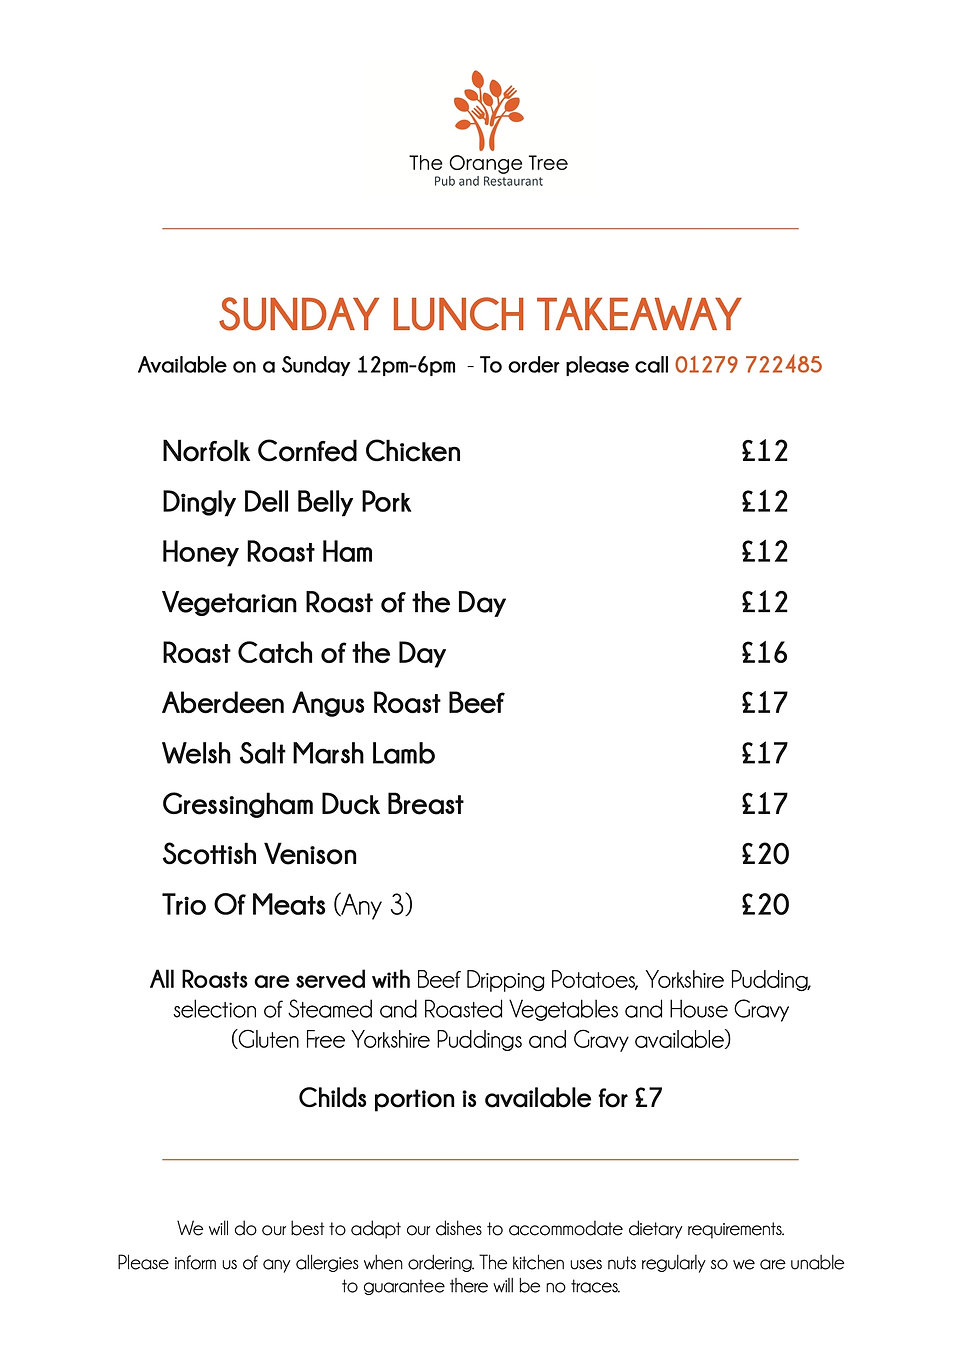 OT SUNDAY LUNCH TAKEAWAY NOVEMBER 2020.j